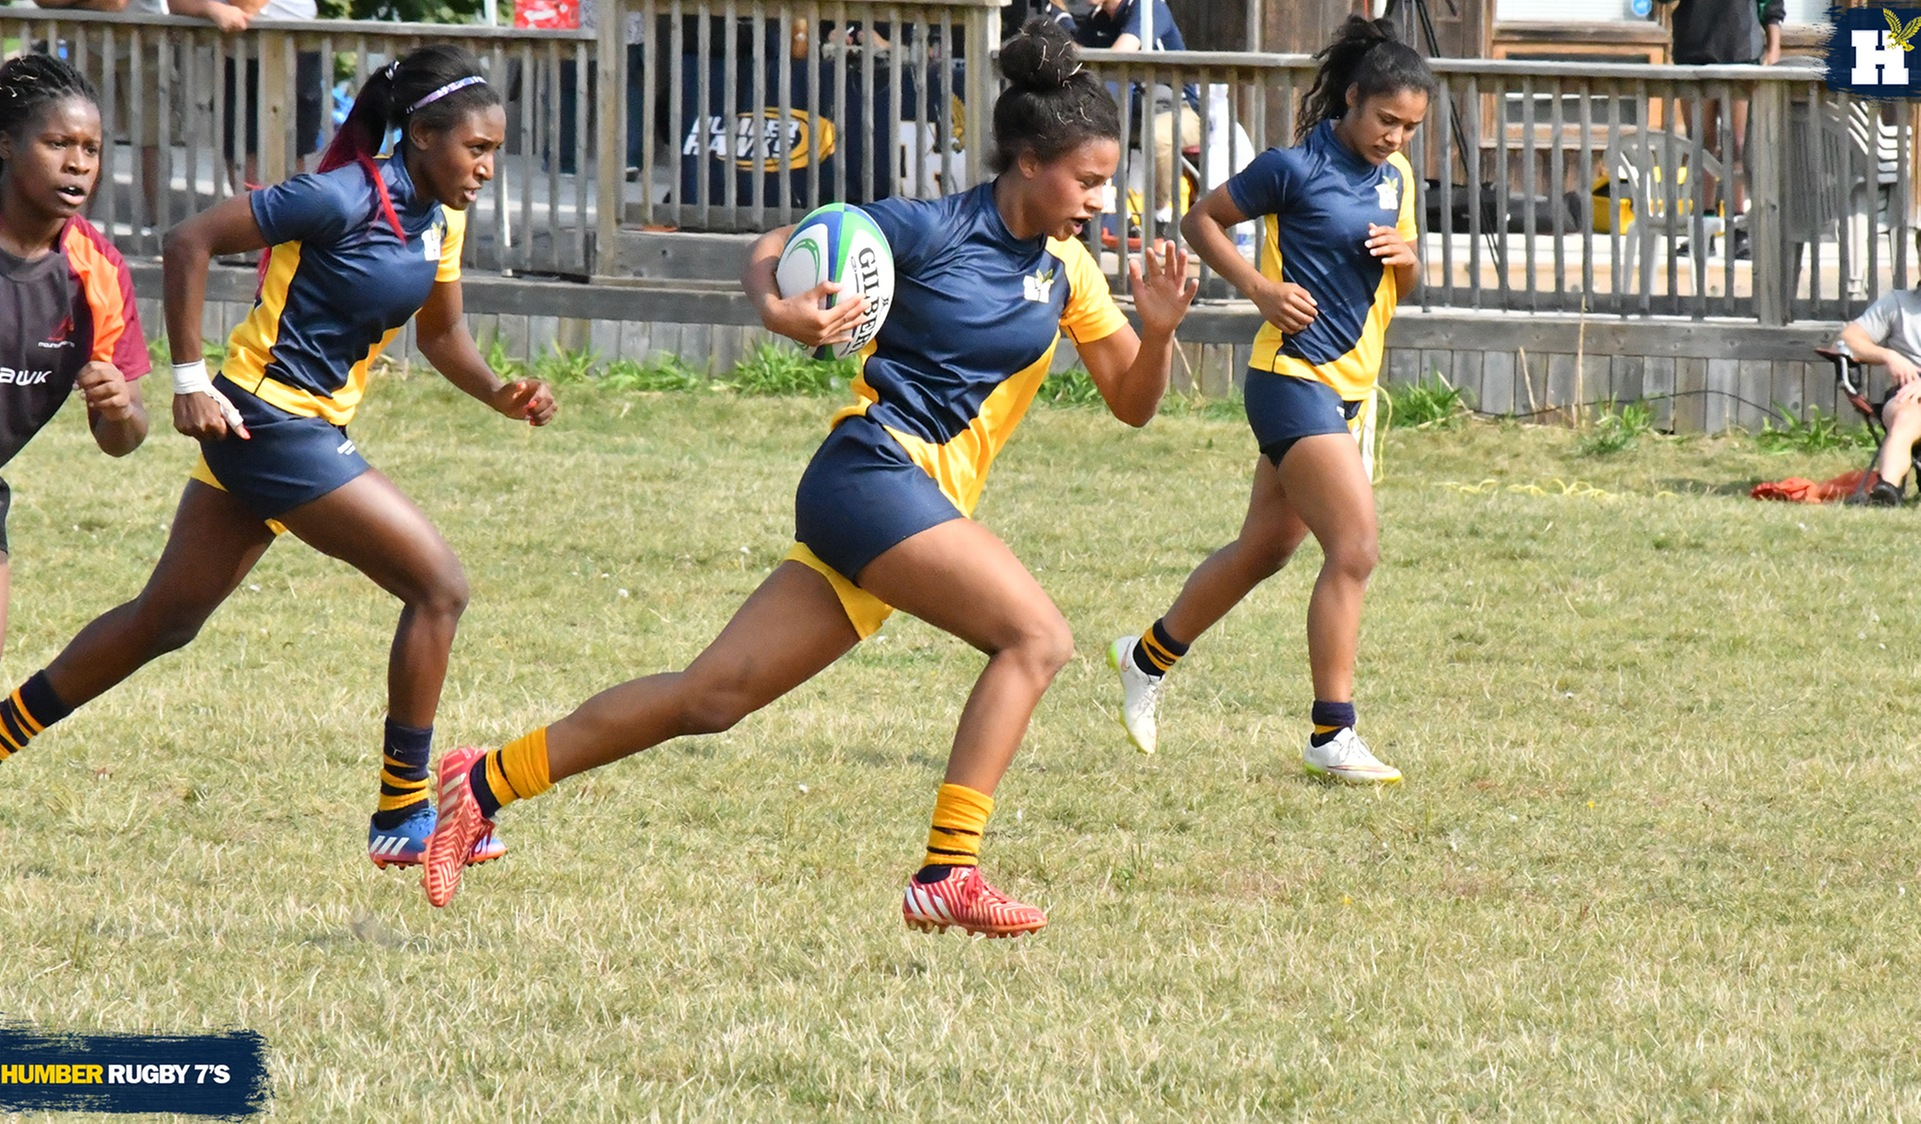 RUGBY 7'S BEGINS '18 CAMPAIGN ON SATURDAY AT SHERIDAN